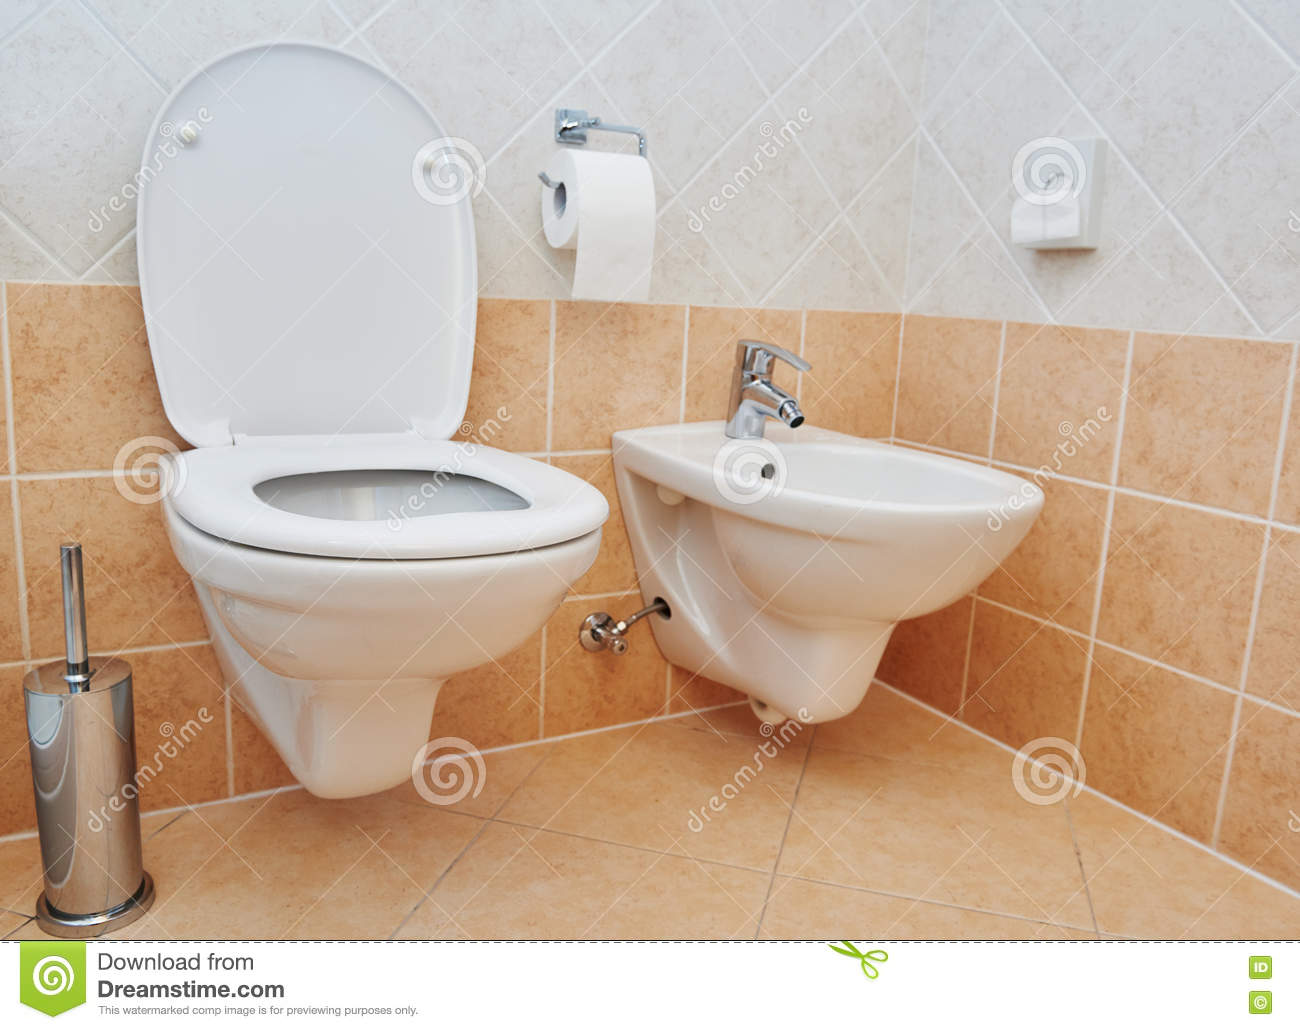 Toilet Sanitary Sink Or Bowl Bidet And Paper Stock Photo - Image of ...